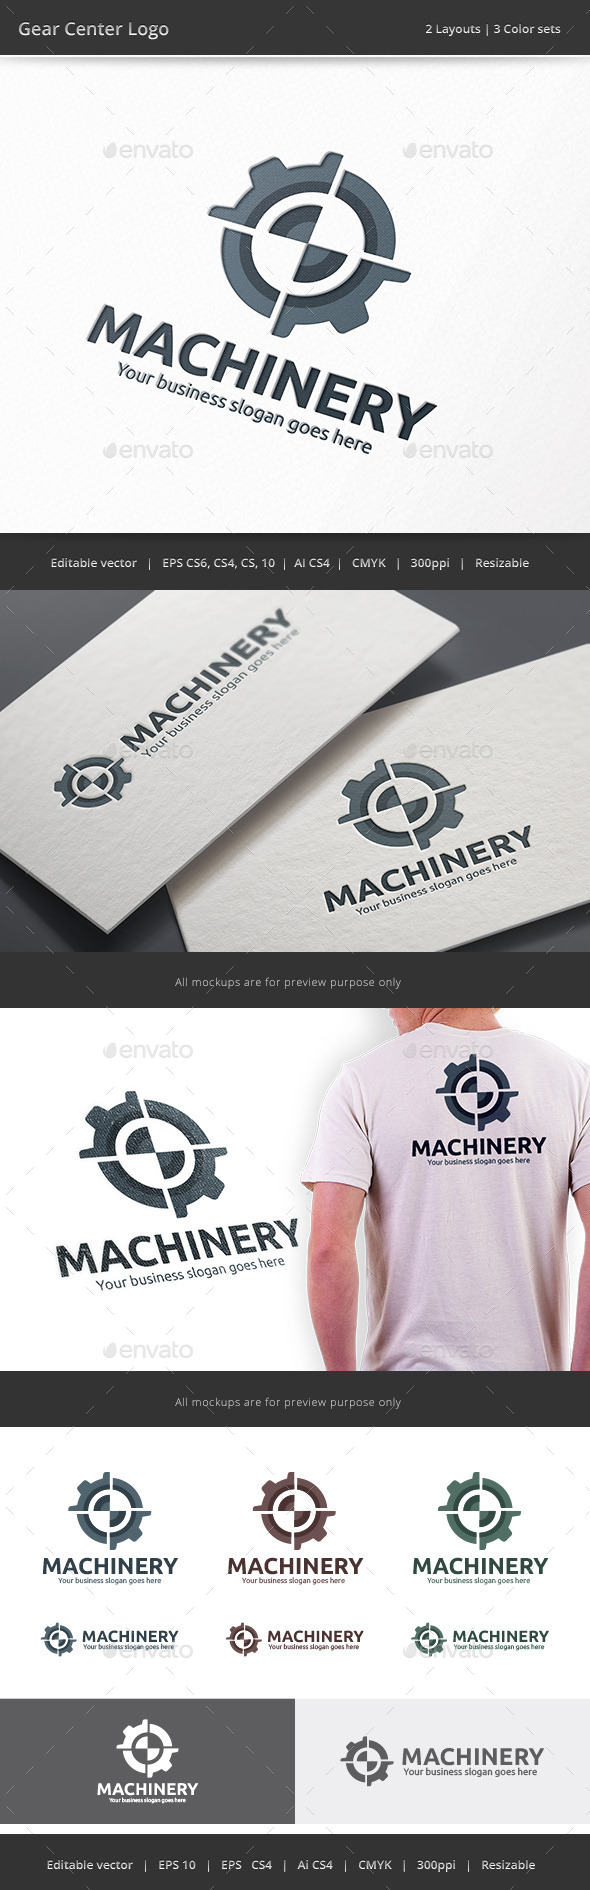 GraphicRiver Gear Center Logo 9264146